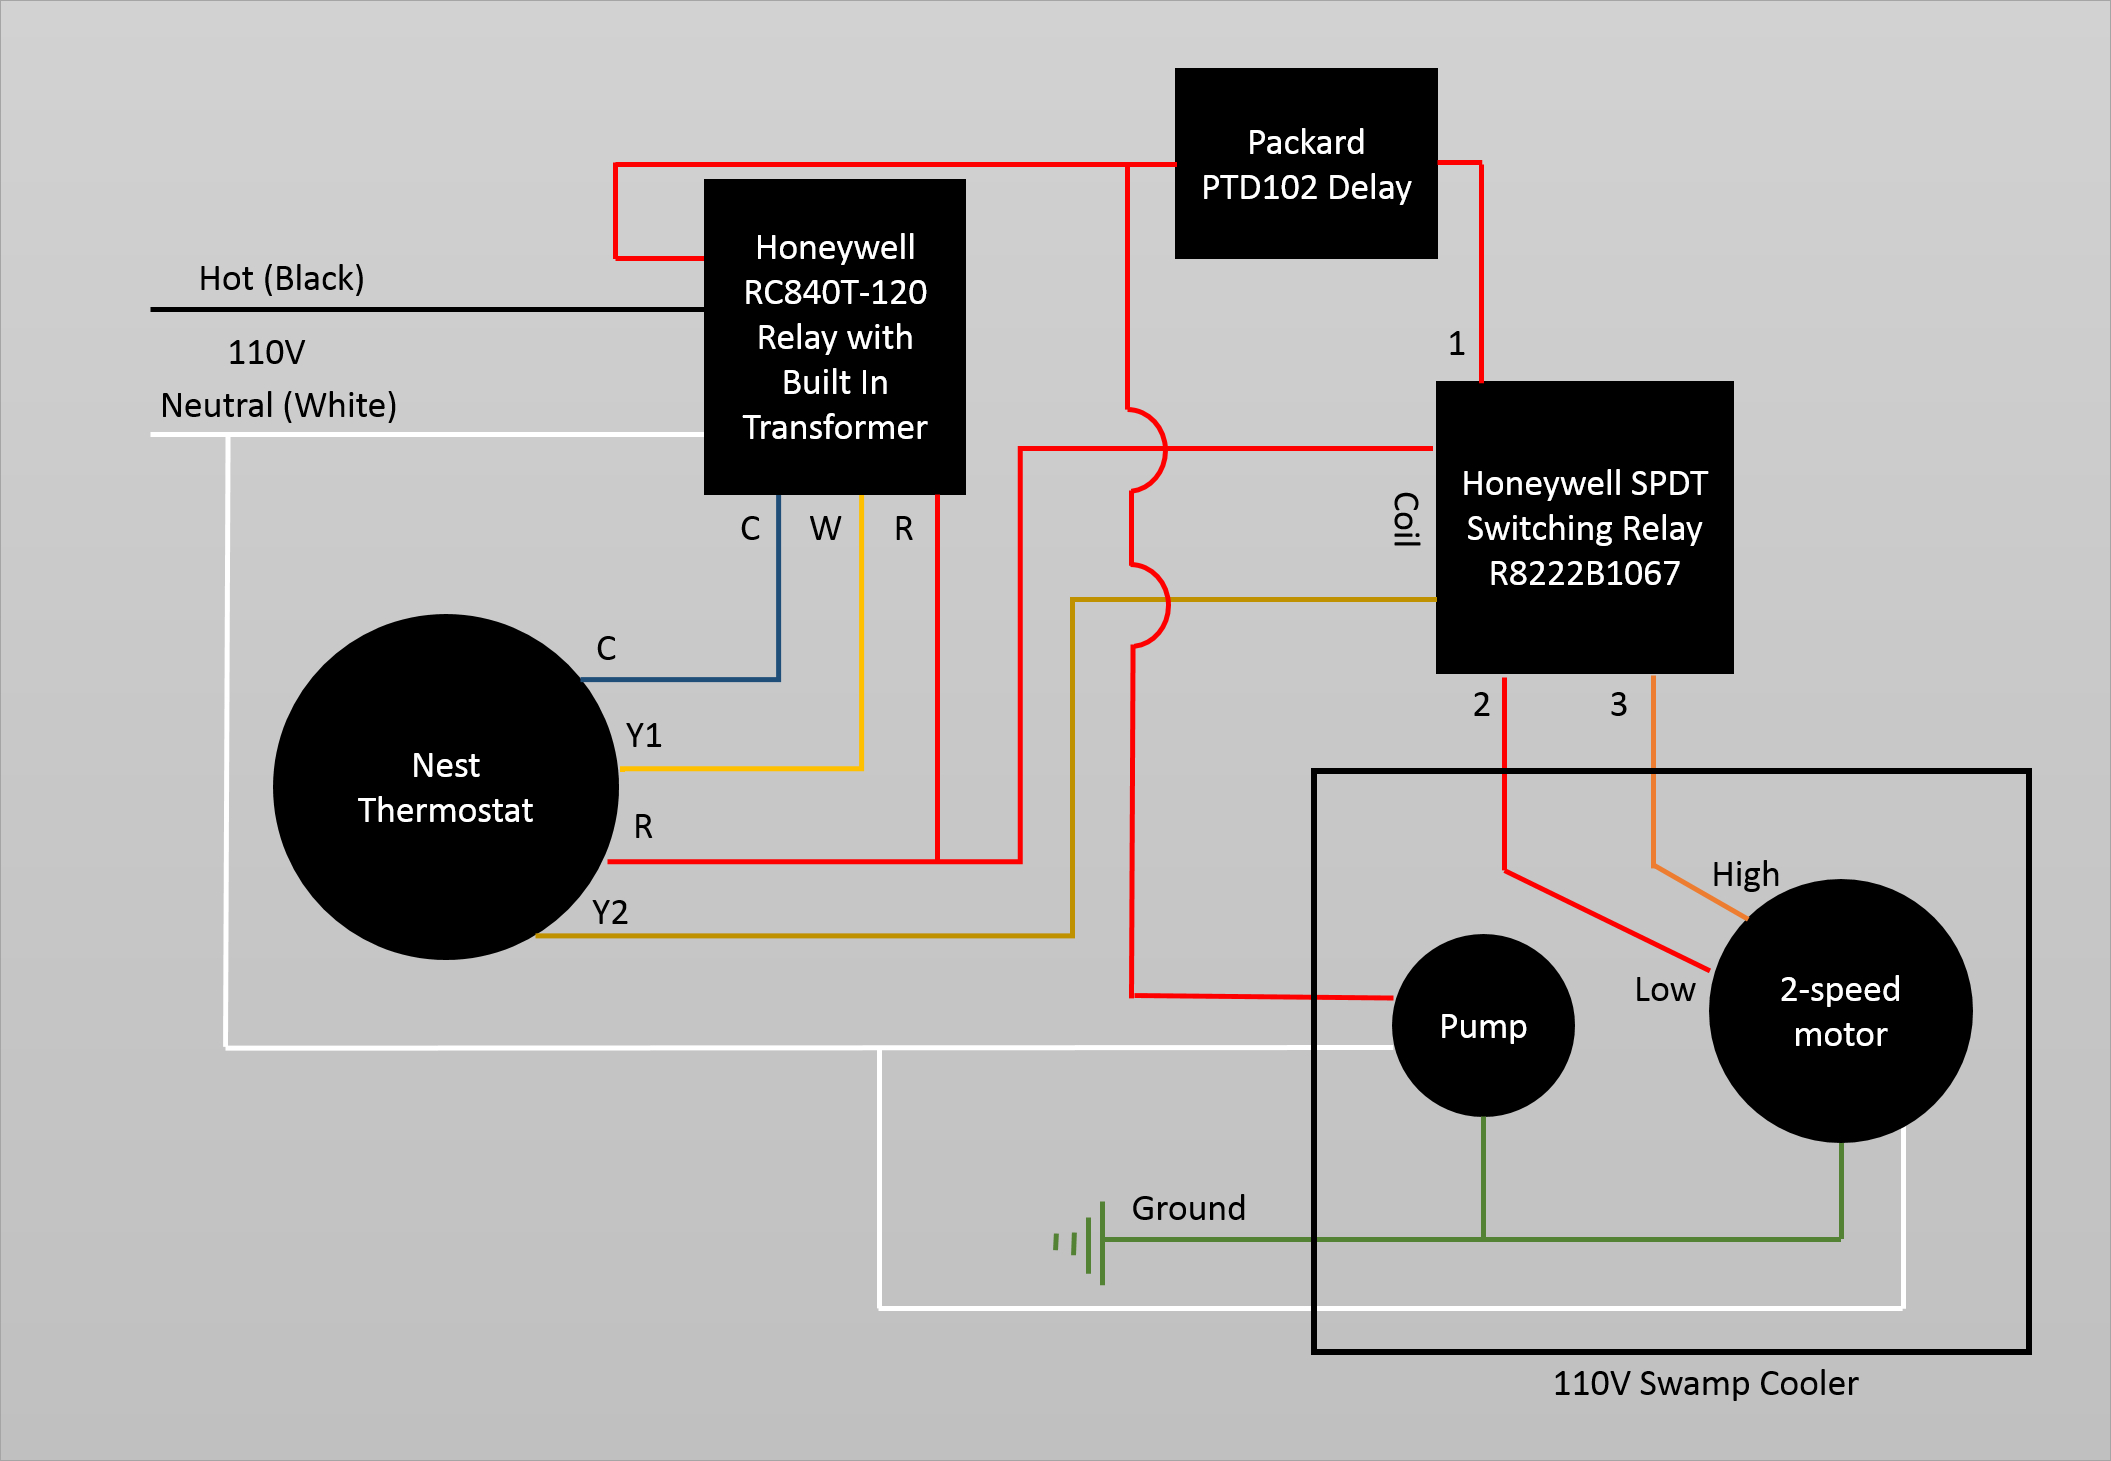 Wiring - Controlling 110V Swamp Cooler Using Nest Thermostat - Home - Nest Pro Thermostat Wiring Diagram